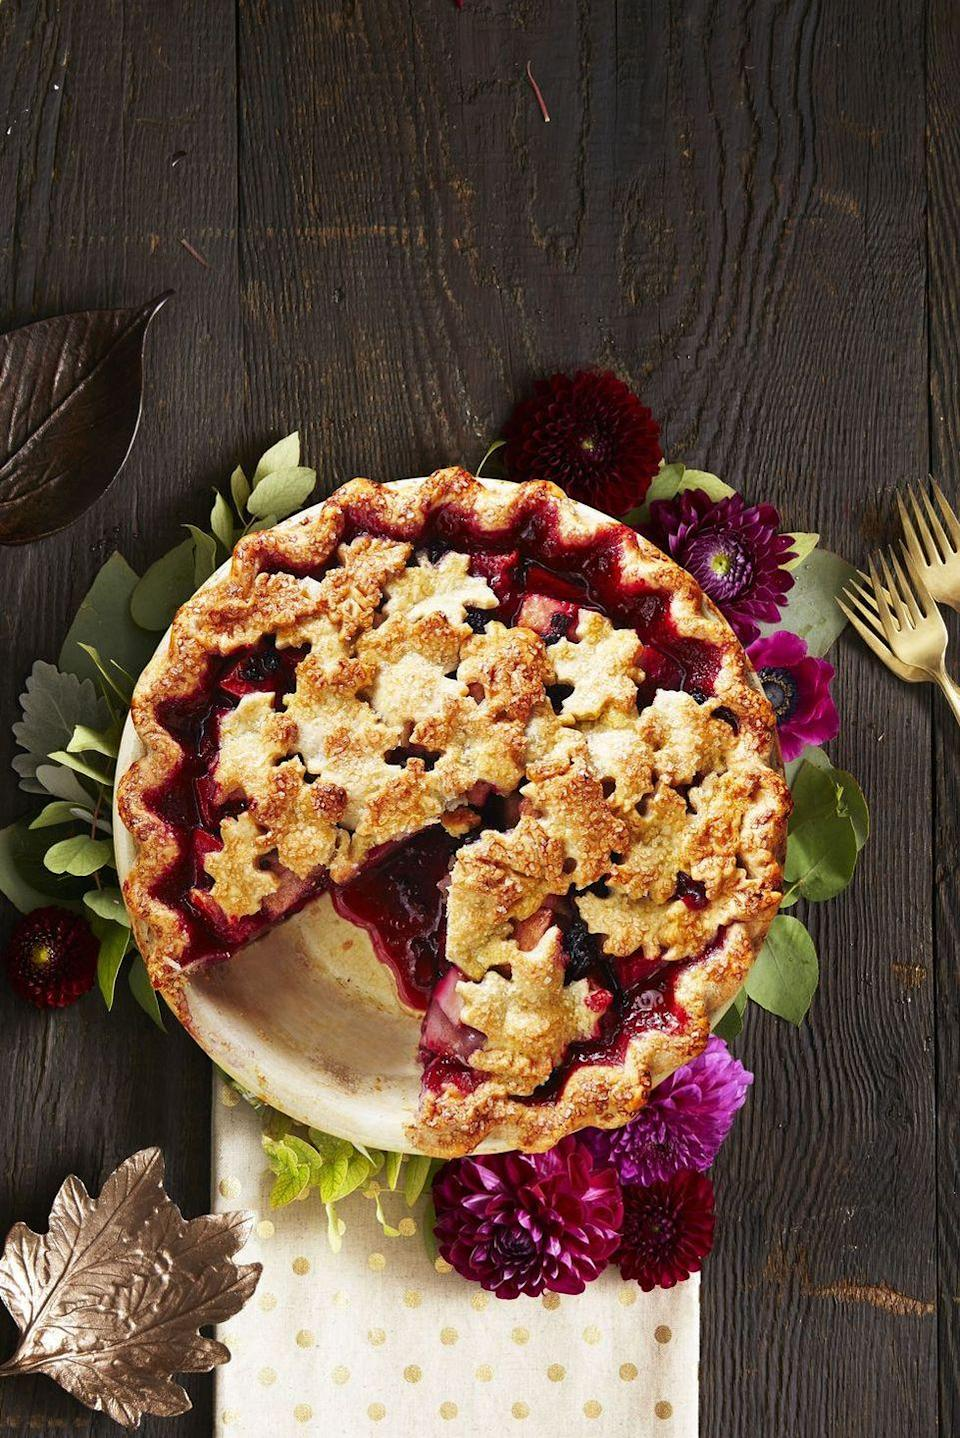 "<p>As pretty as a picture, guests will enjoy the tart flavoring of the pear and blackberry.</p><p><a href=""https://www.goodhousekeeping.com/food-recipes/dessert/a34579/harvest-pear-blackberry-pie/"" rel=""nofollow noopener"" target=""_blank"" data-ylk=""slk:Get the recipe for Harvest Pear Blackberry Pie »"" class=""link rapid-noclick-resp""><em>Get the recipe for </em><em>Harvest Pear Blackberry Pie</em> <strong>»</strong></a></p>"